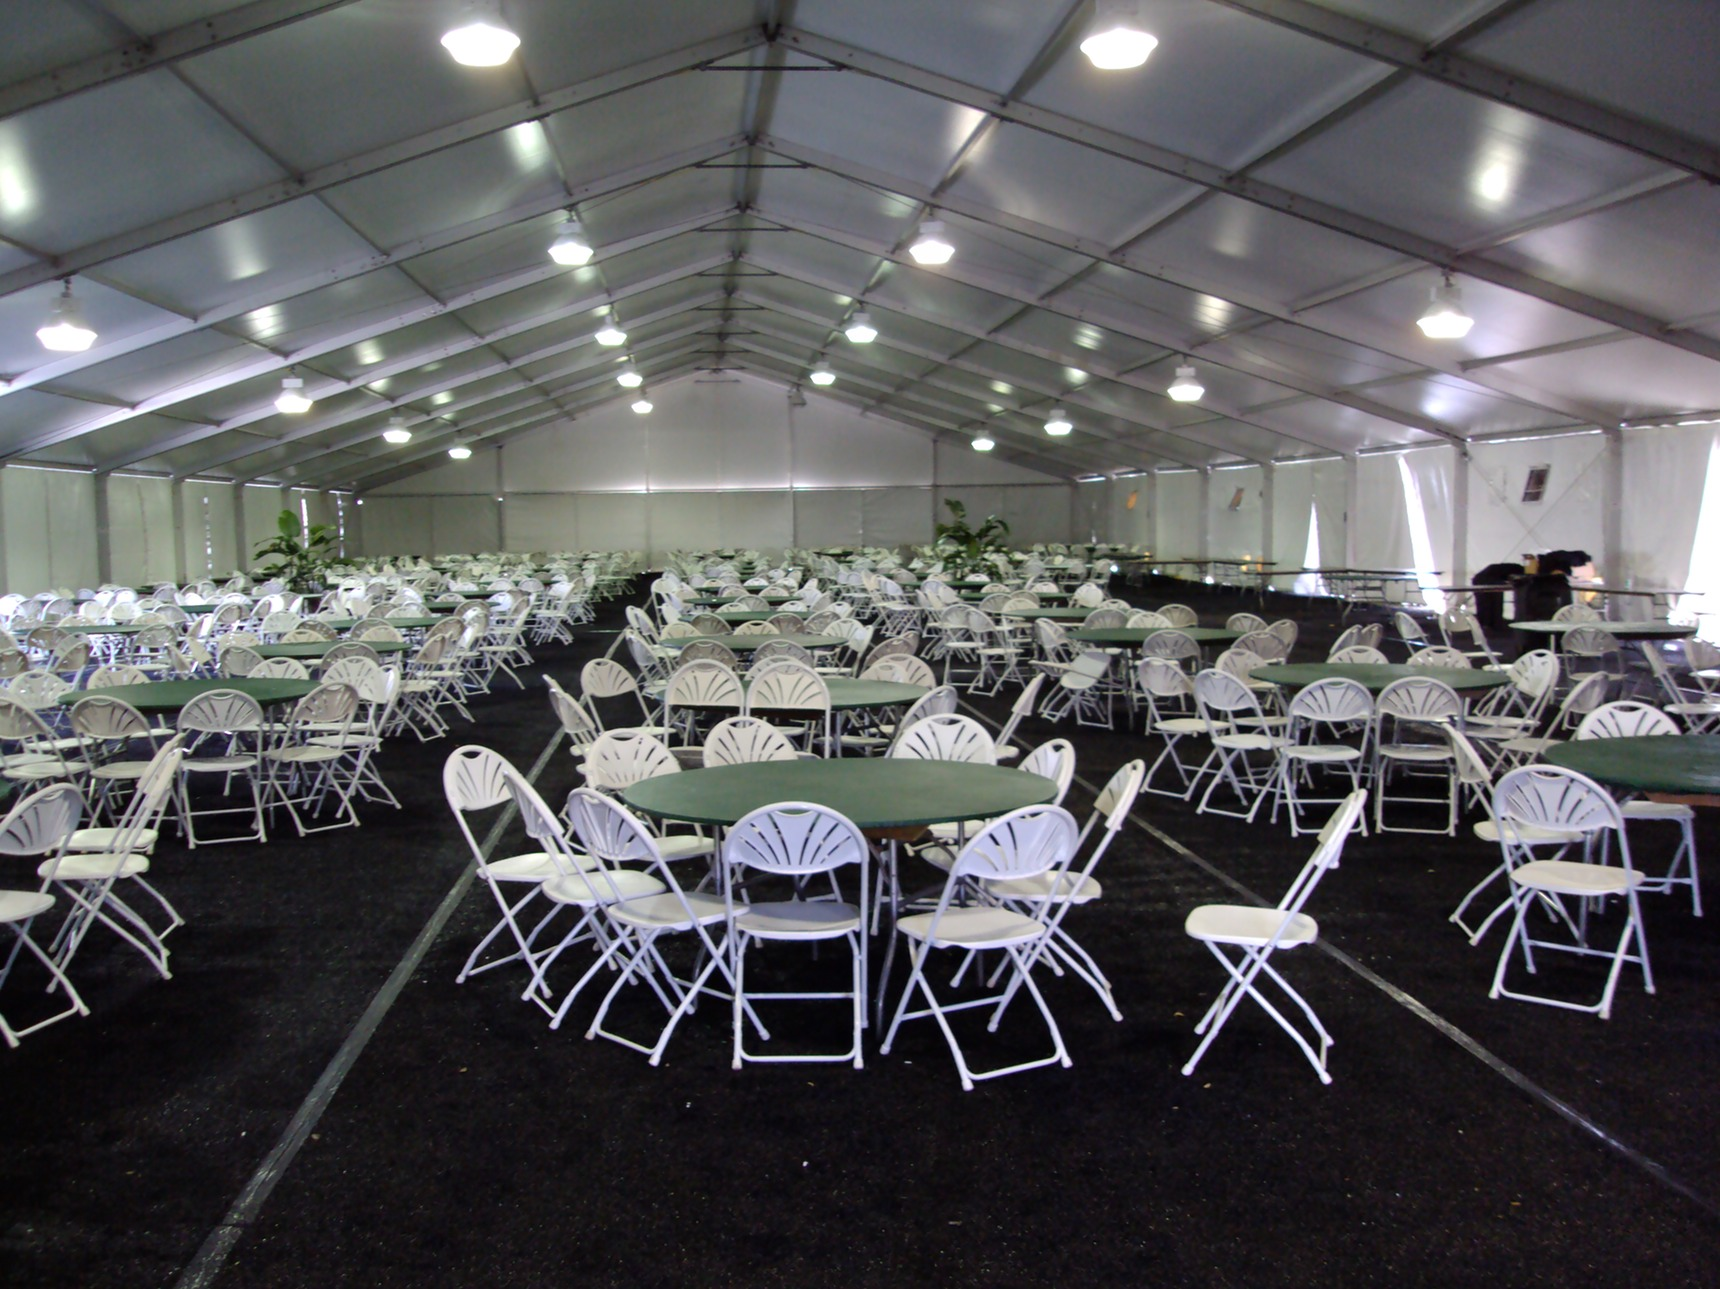 Clearspan Tent Rentals and party rentals in miami